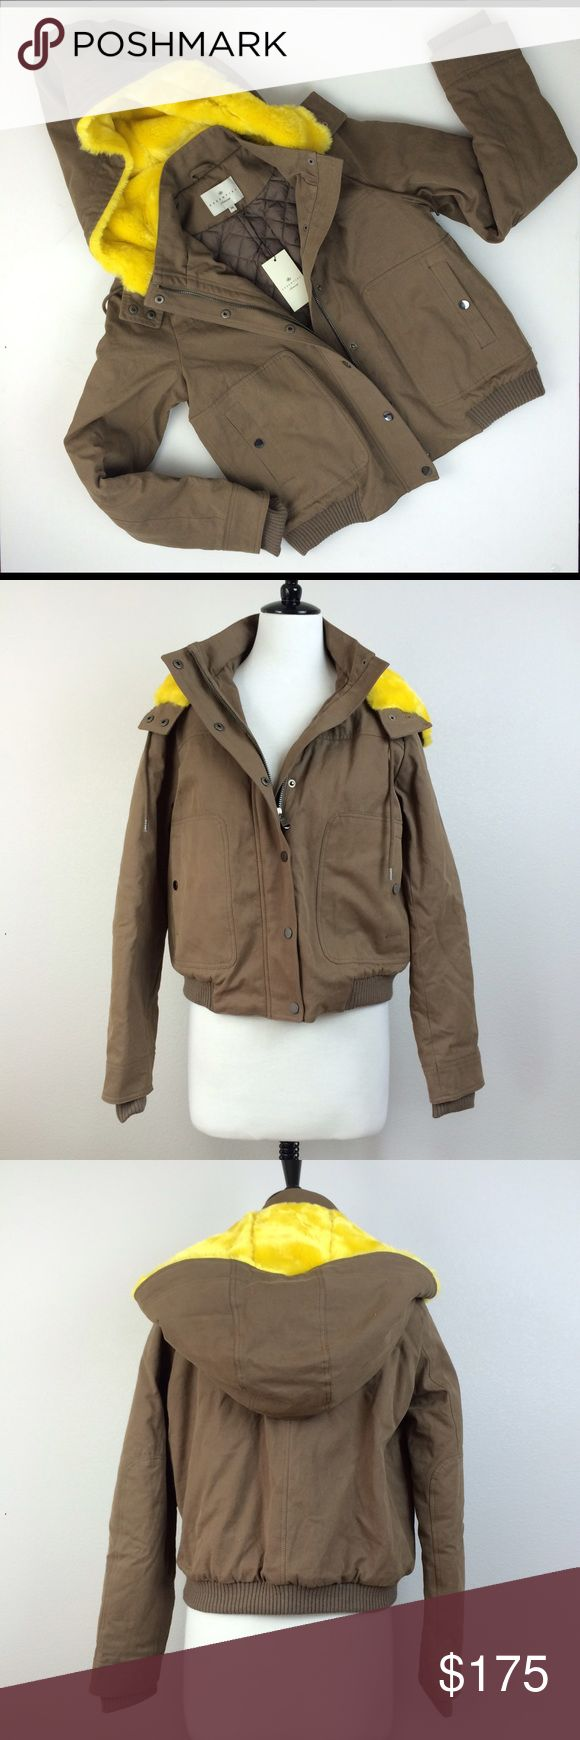 """NWT Essentiel Antwerp Brown Parka NWT Essentiel Antwerp Brown Parka with Yellow fur hoodie. Quilted lining. Shoulder 15.5"""". Length 23"""". Sleeve length 27"""". Zipper and snap closure. Two side pockets with snap button closure. Size 38 fits like size S. Nasty Gal Jackets & Coats"""